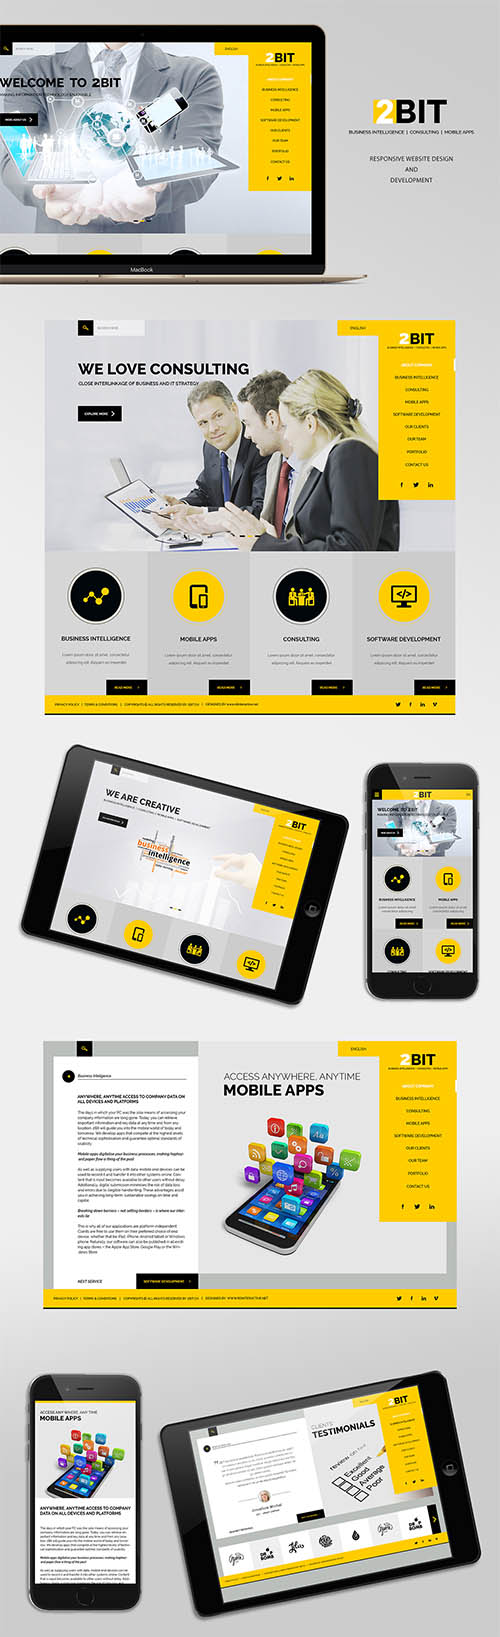 2BIT Website Design and WordPress Development By Muhammad Tausee